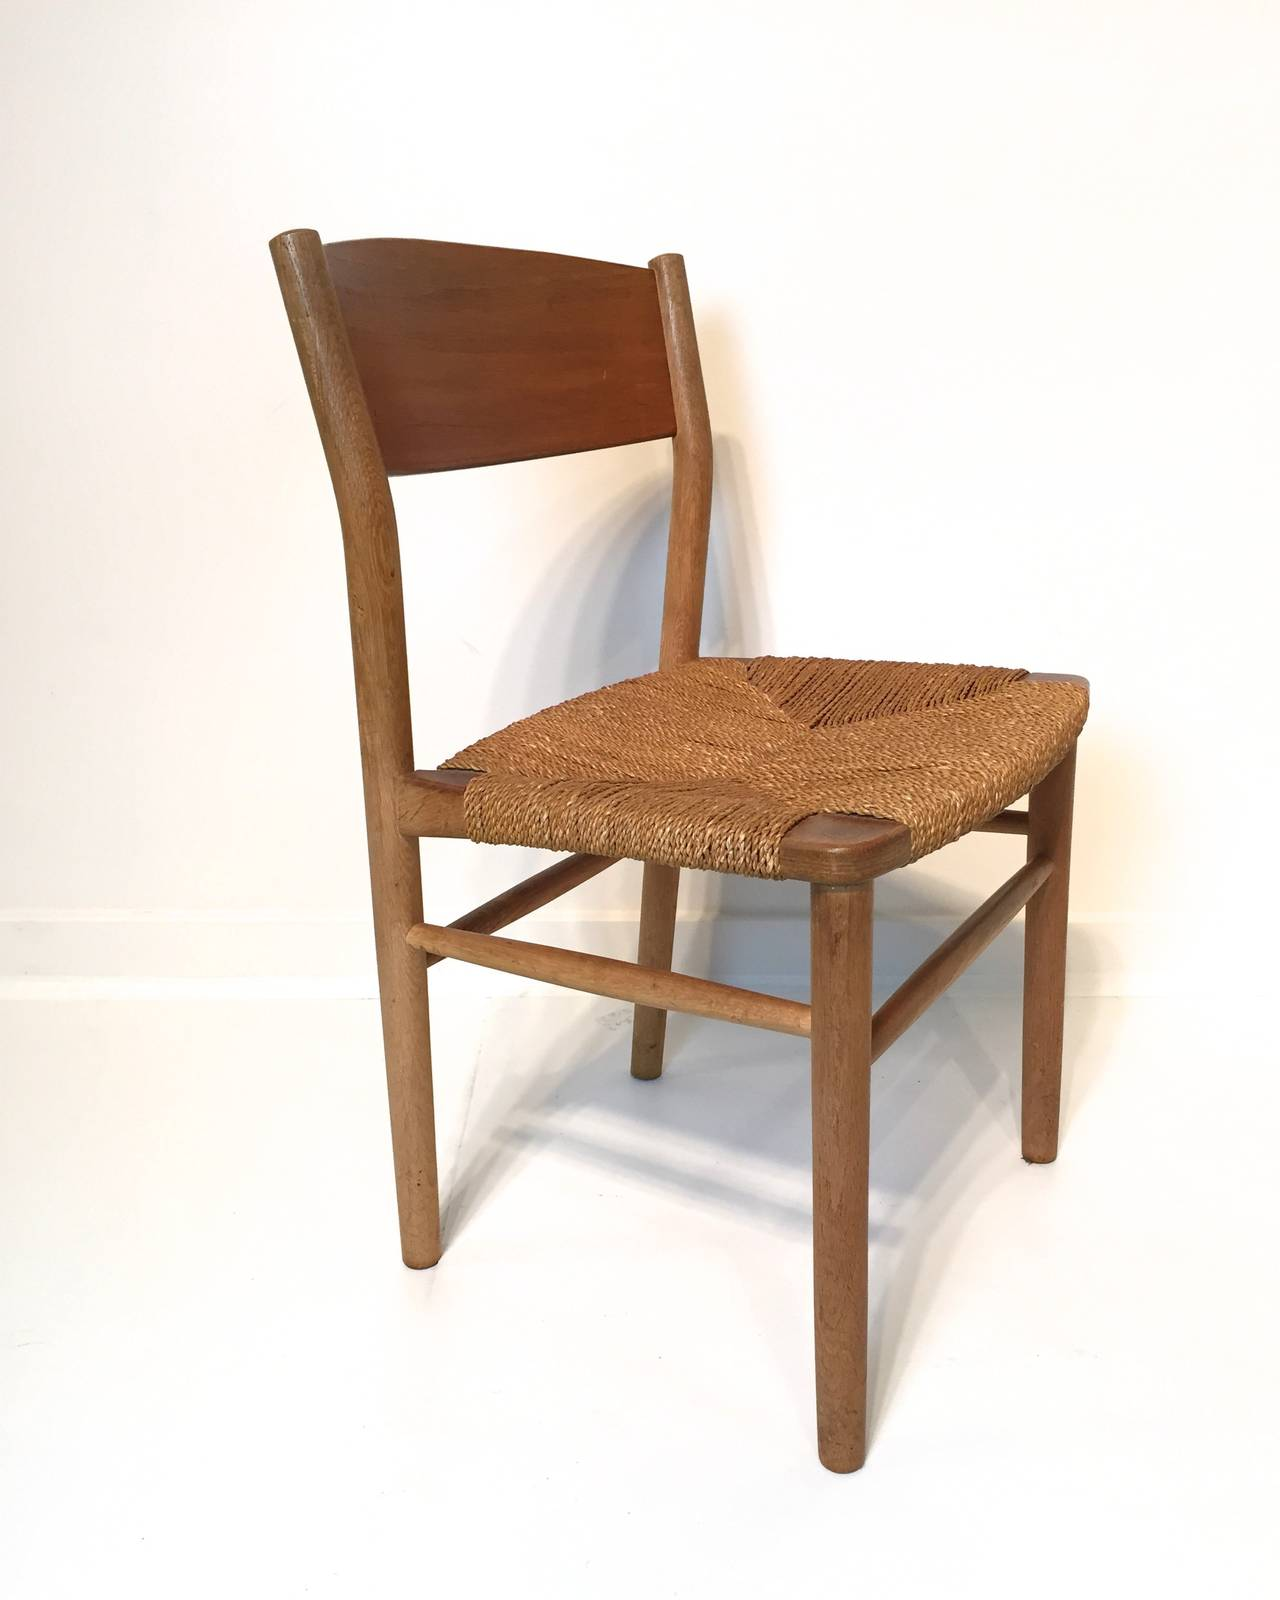 seagrass dining chairs desk chair warmer borge mogensen at 1stdibs